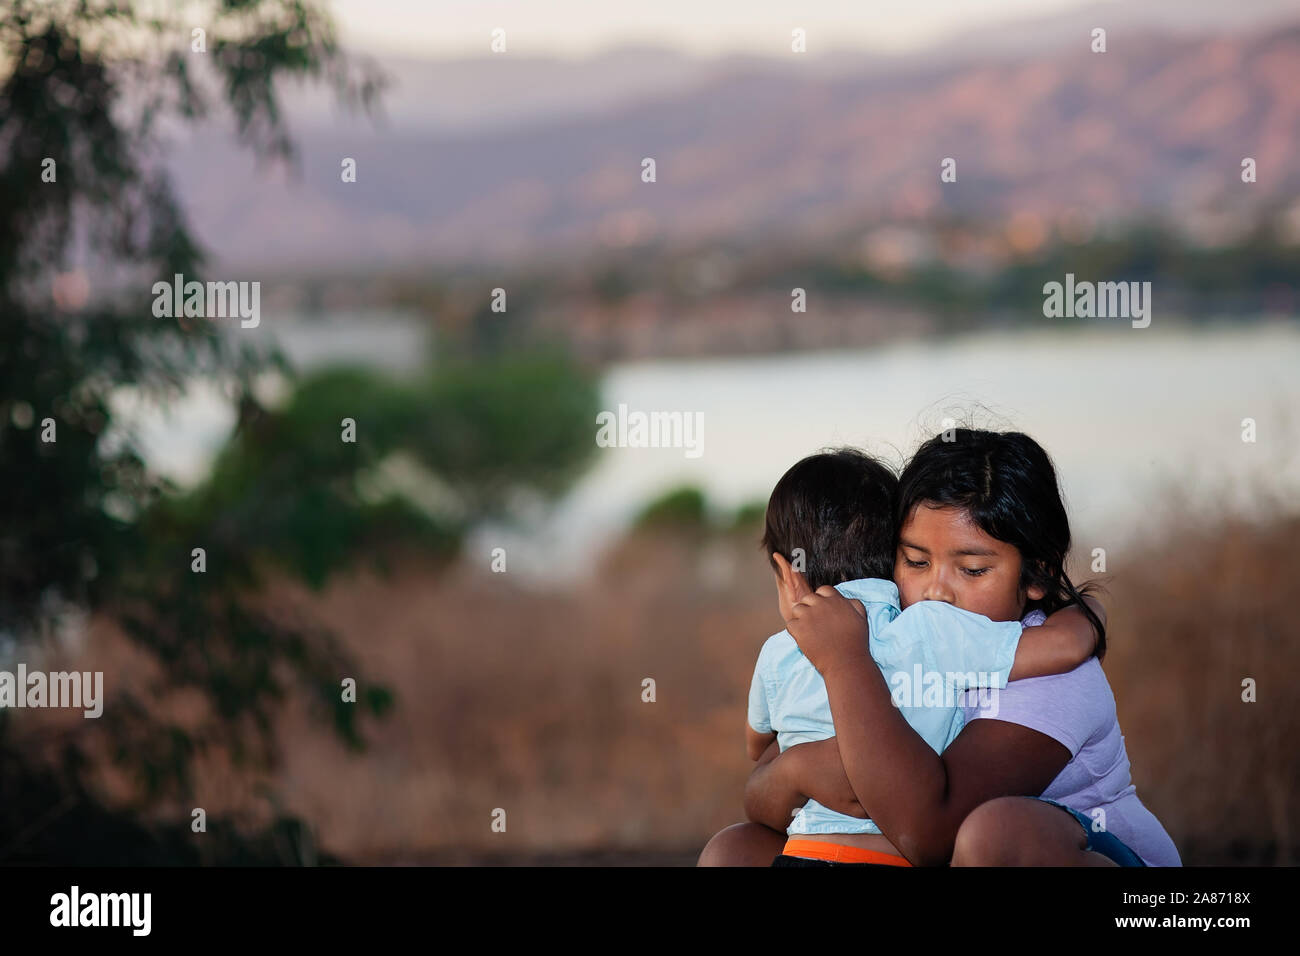 Brother and sister separated from parents are hugging each other in a foreign country, across a river. Stock Photo